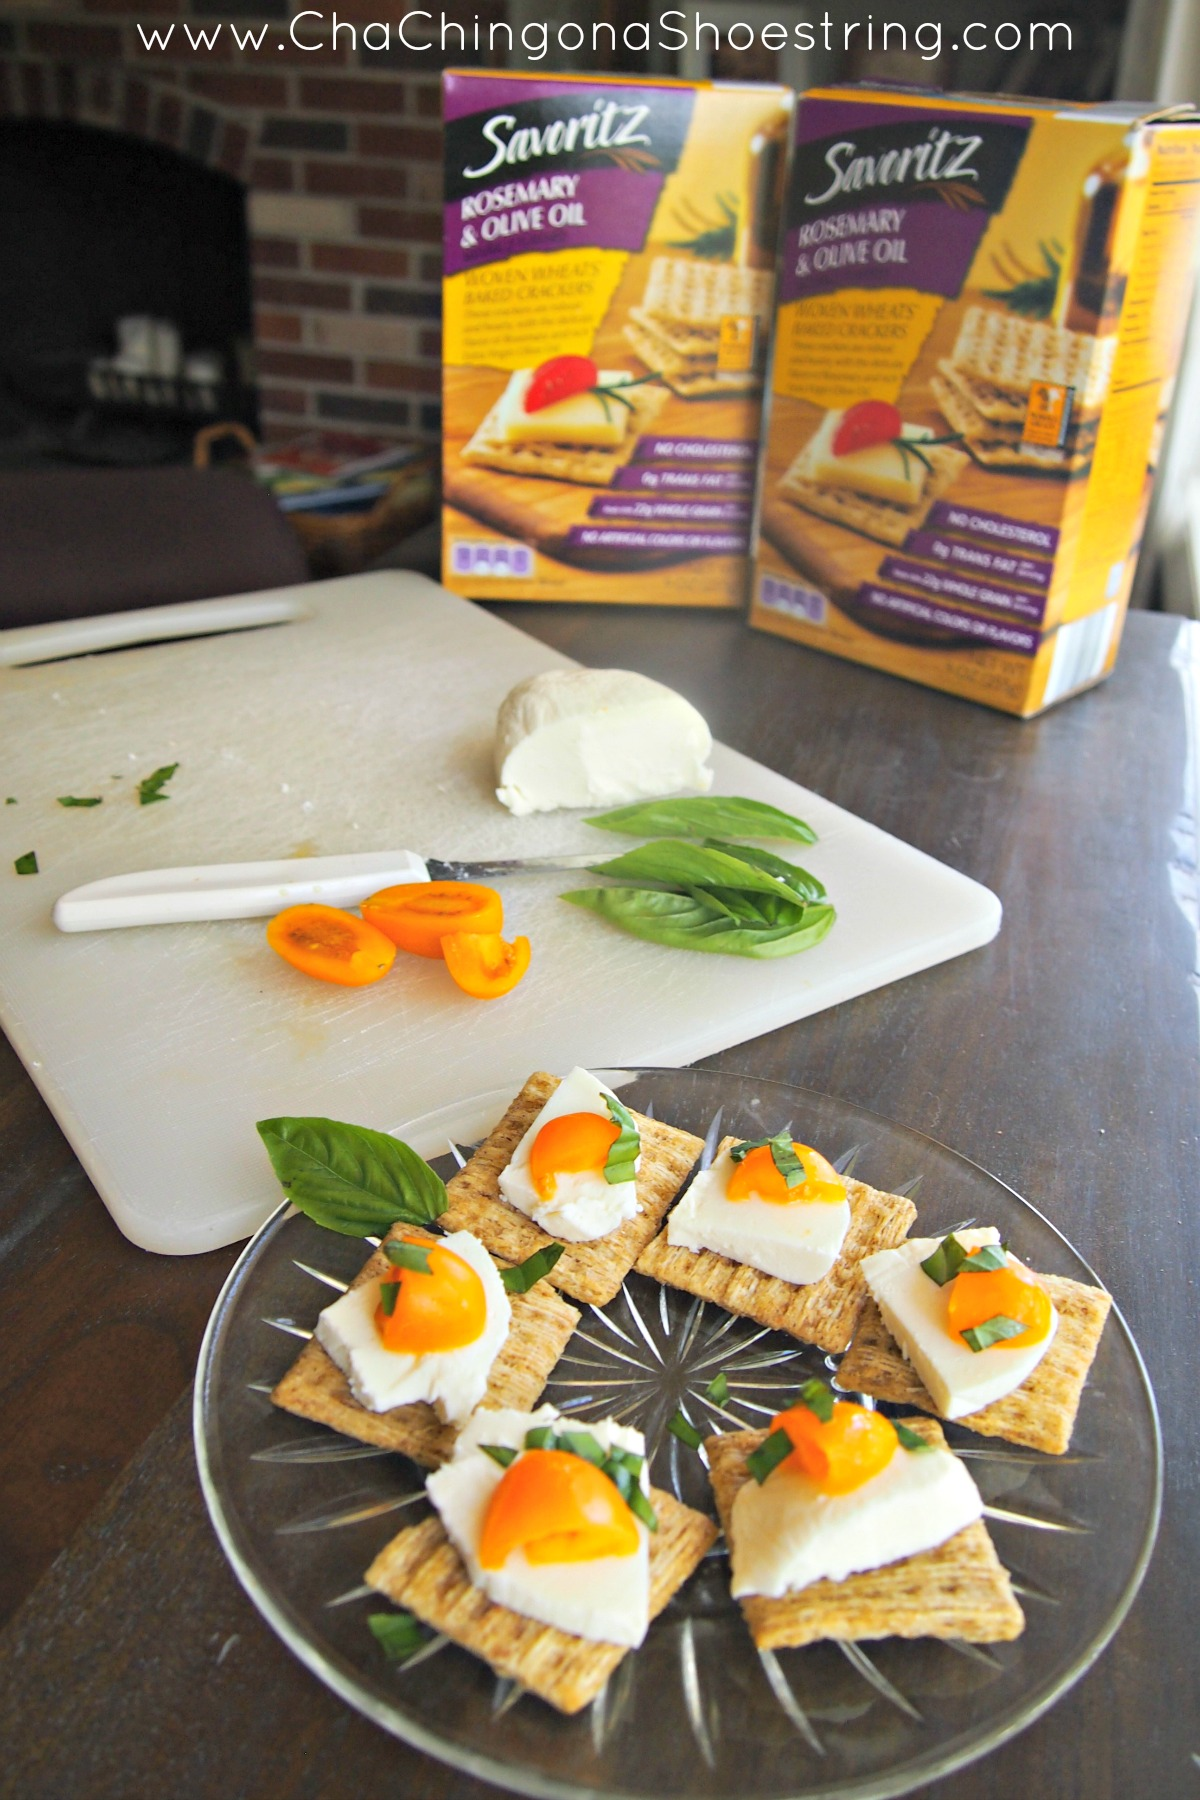 Caprese Bites with Rosemary and Olive Oil Crackers